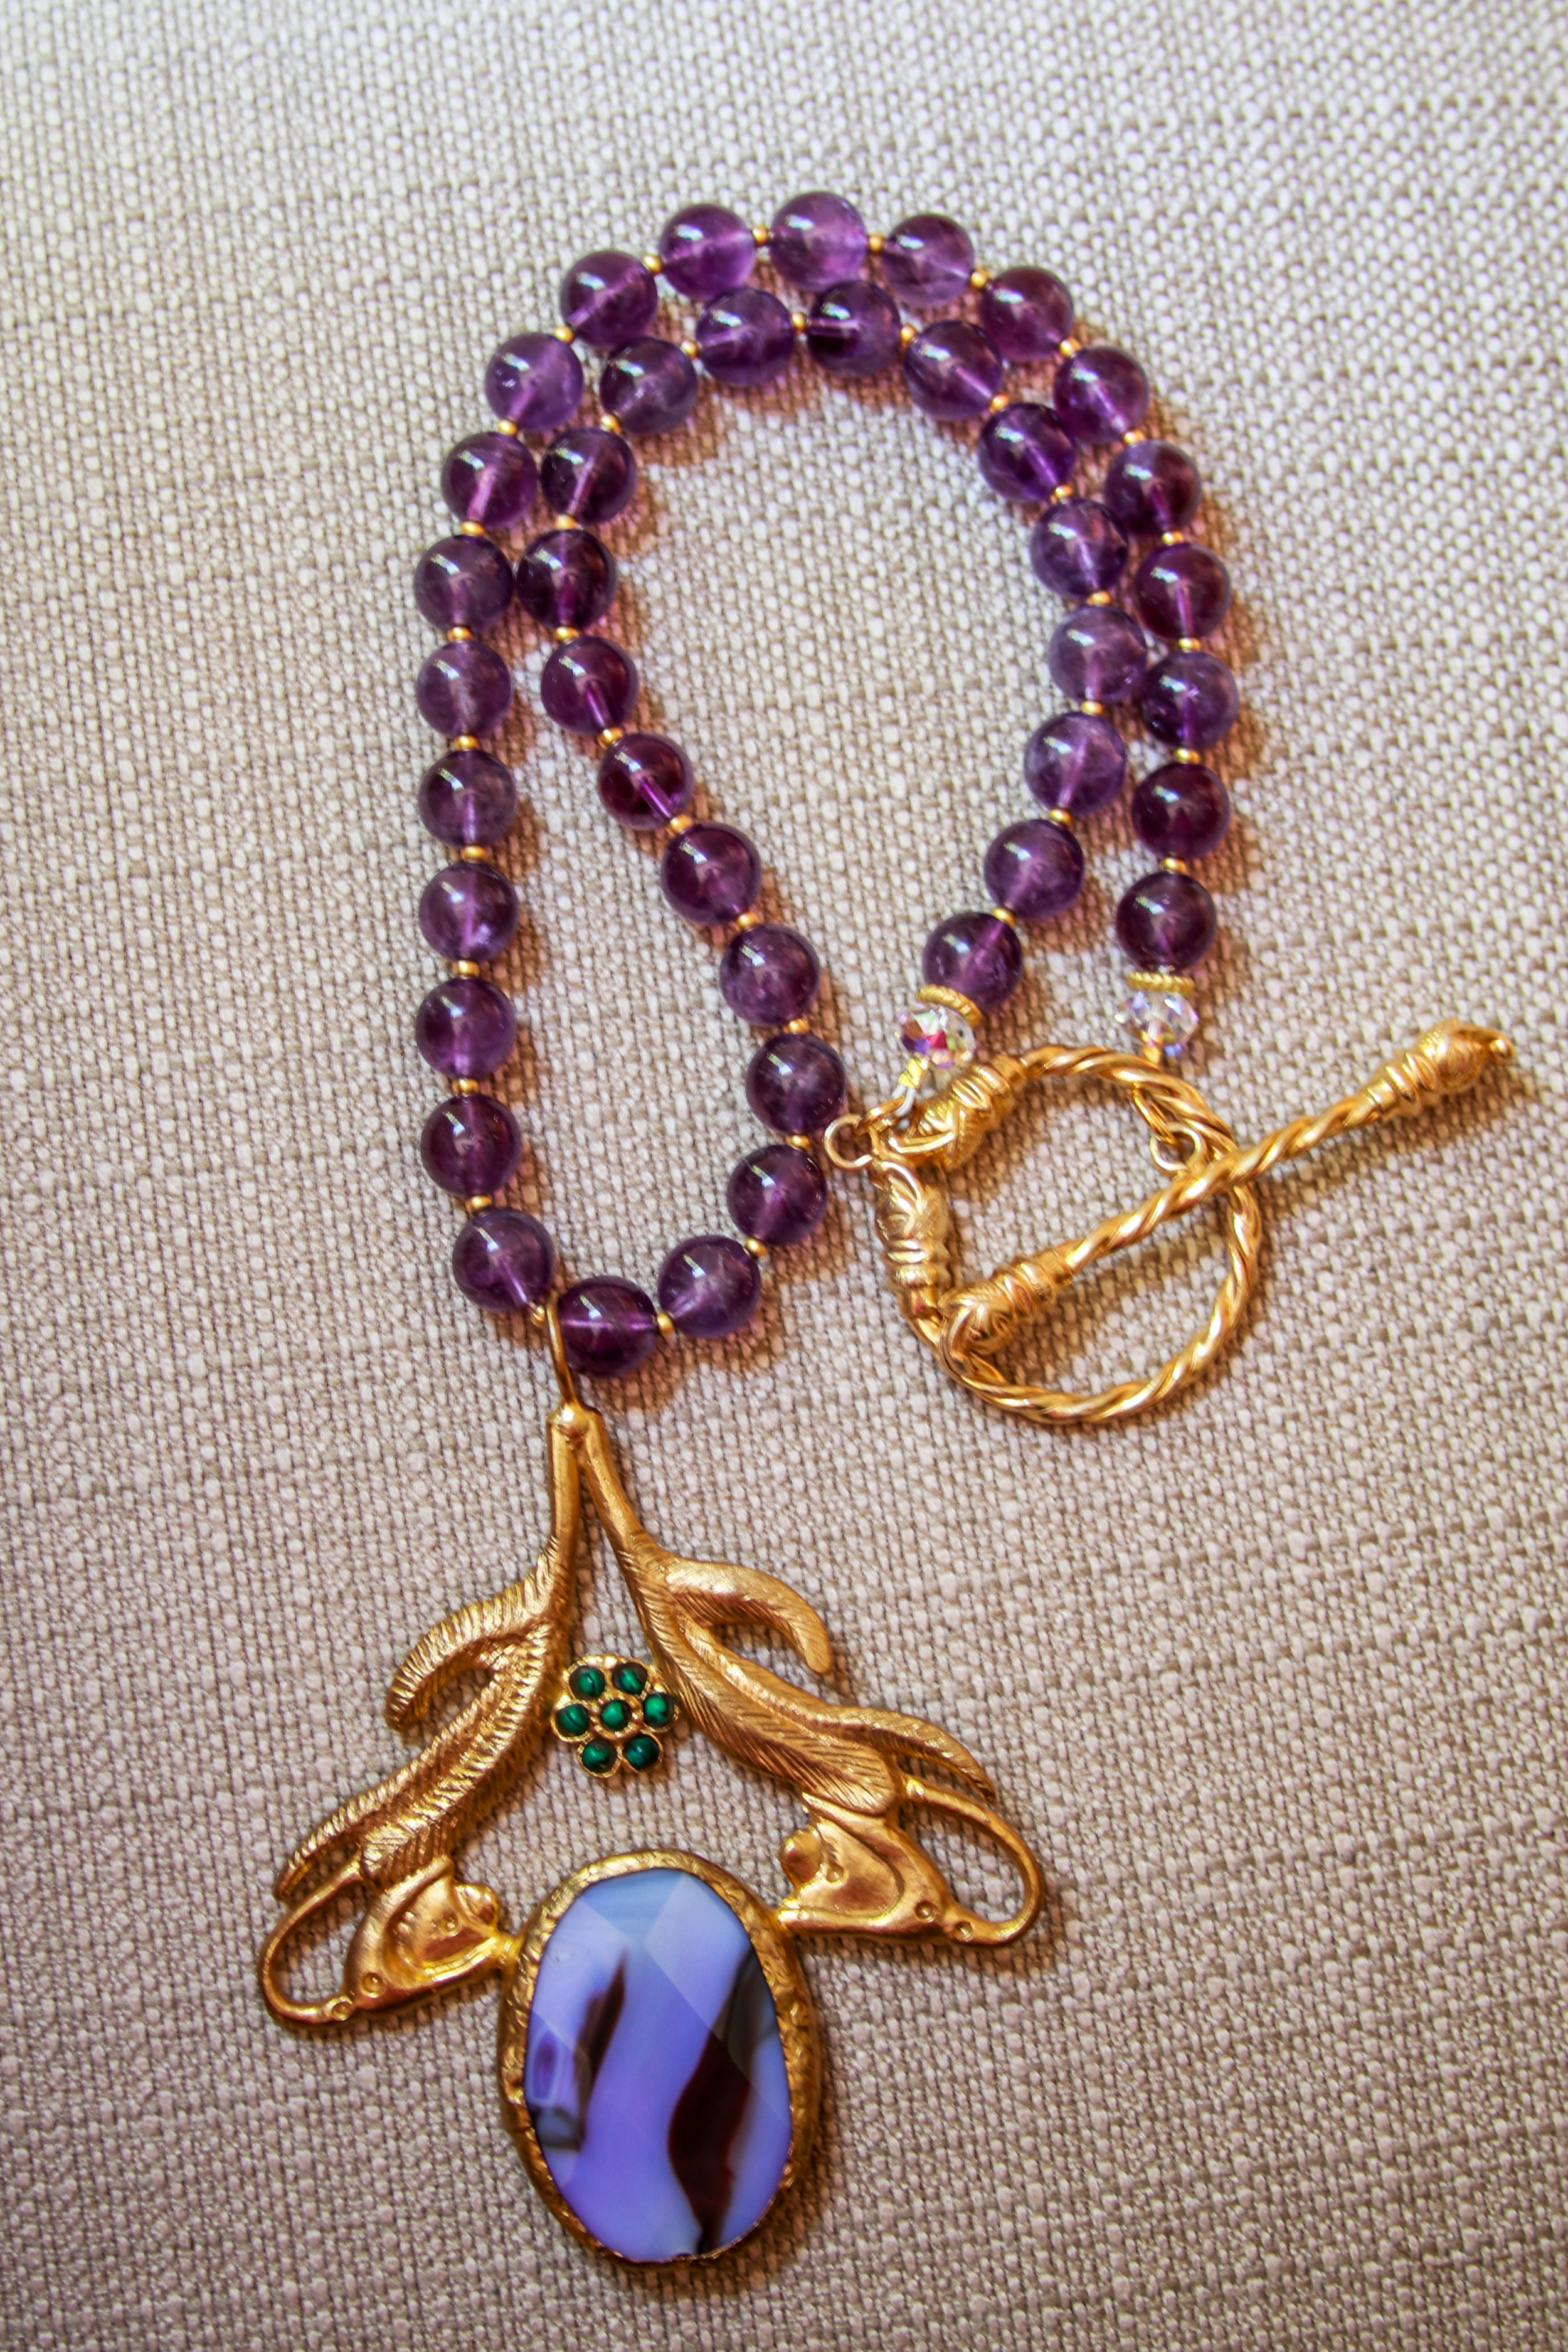 Vintage Glass Pendant with Amethyst